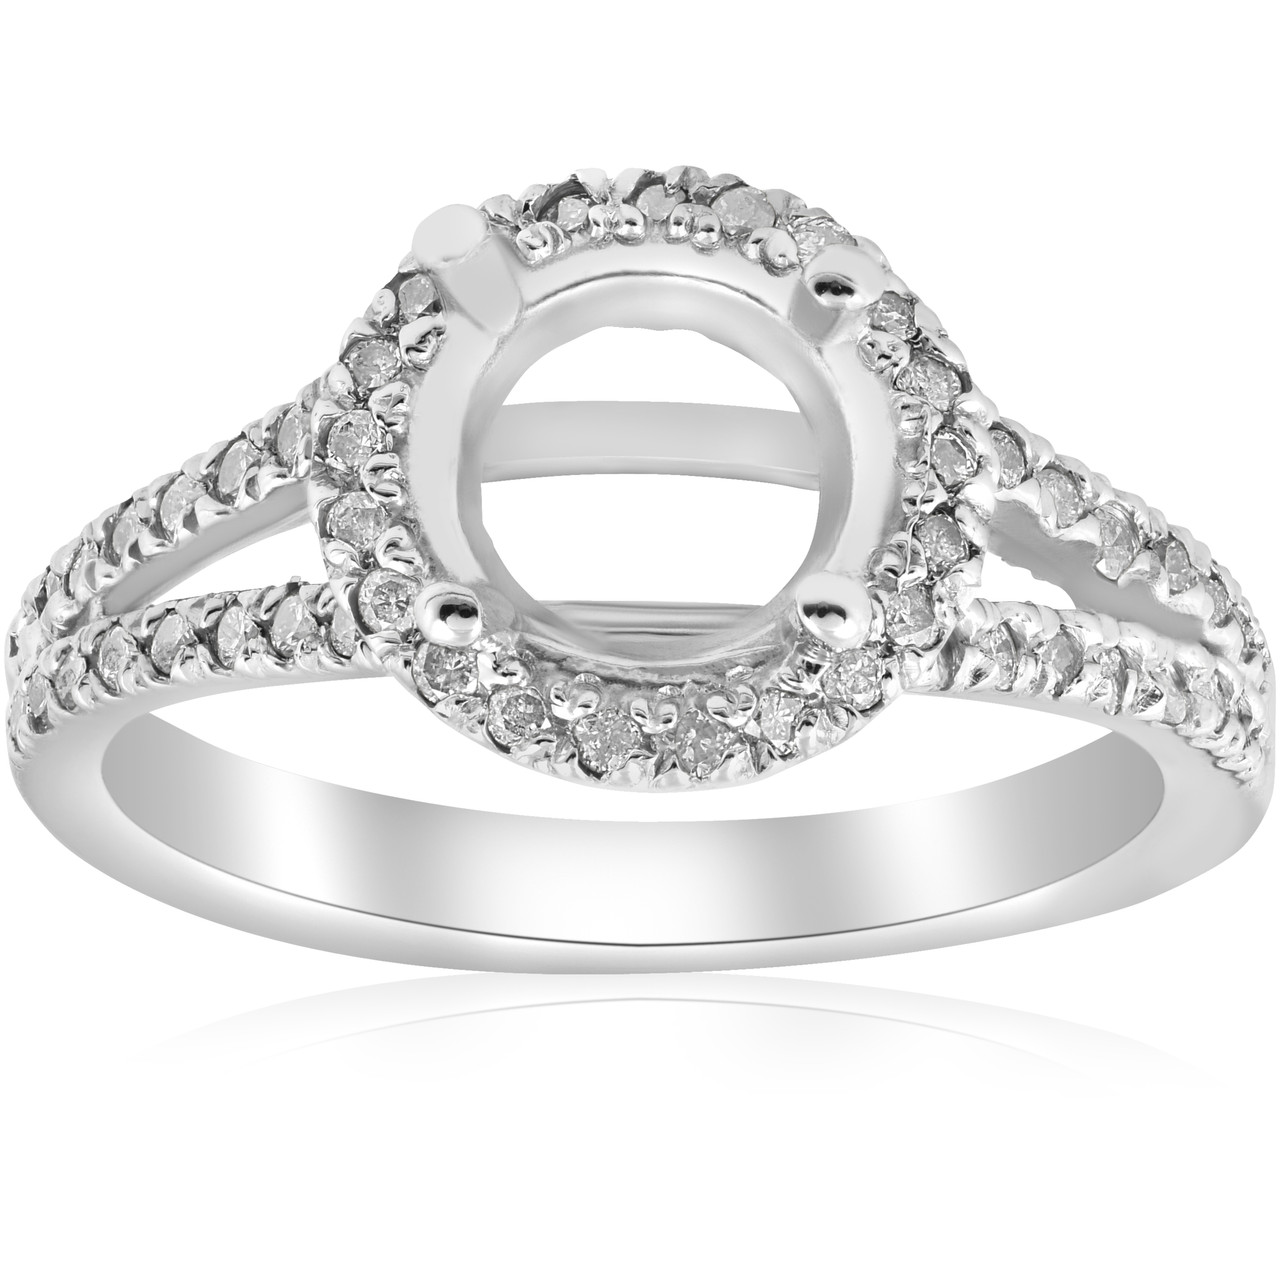 halo settings rings on carat round size engagement wedding diamond of large jewellery cut hand ring no